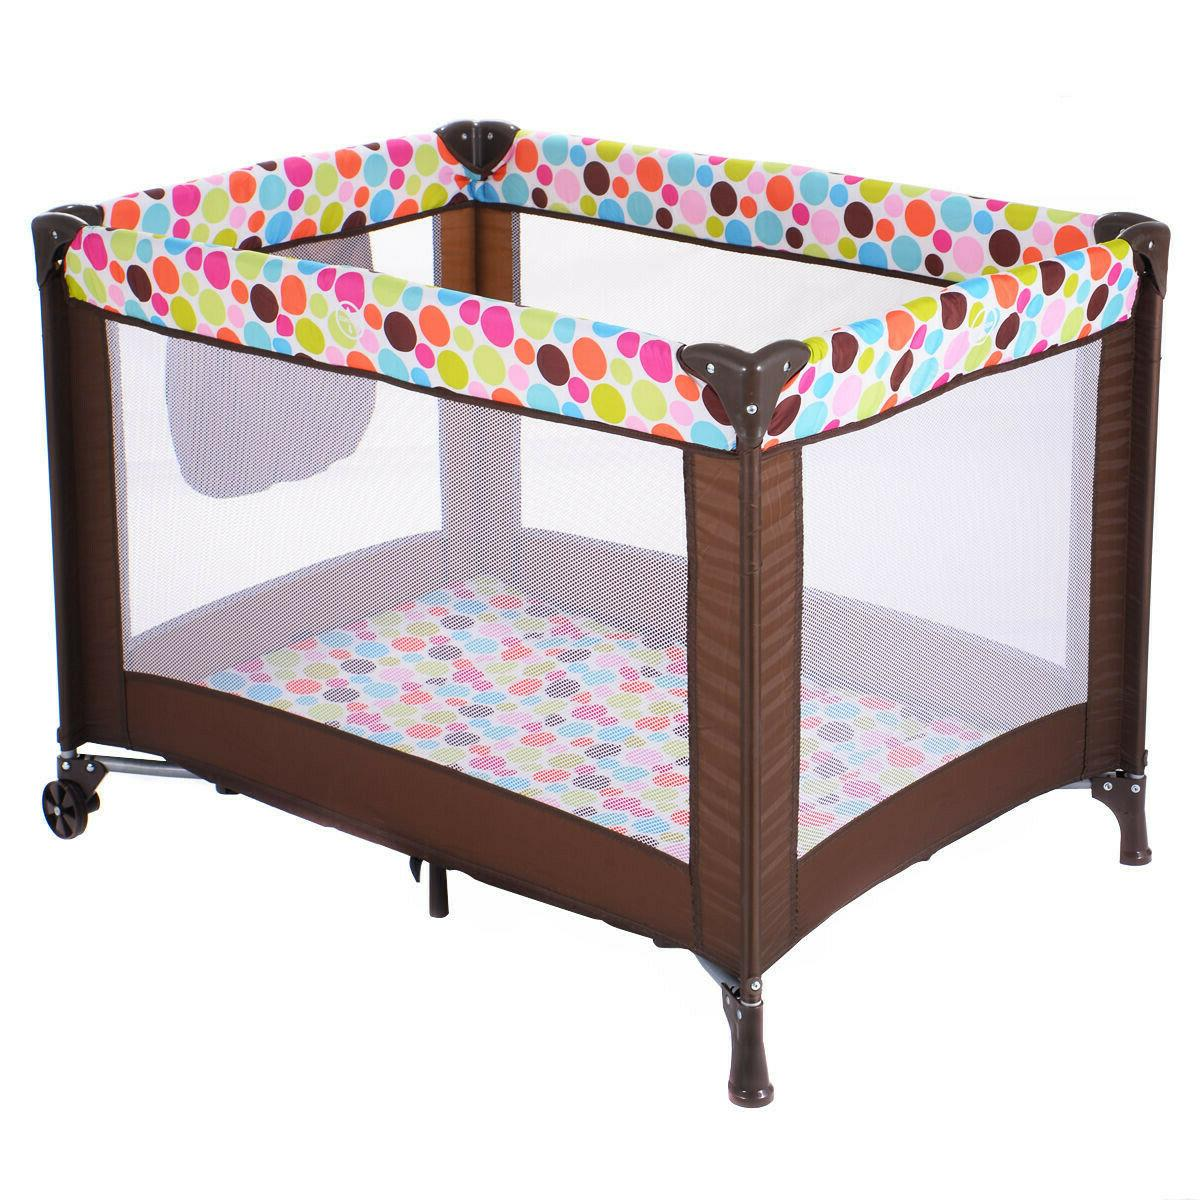 Baby Crib Bed Toddler Travel Bassinet Playpen Pad